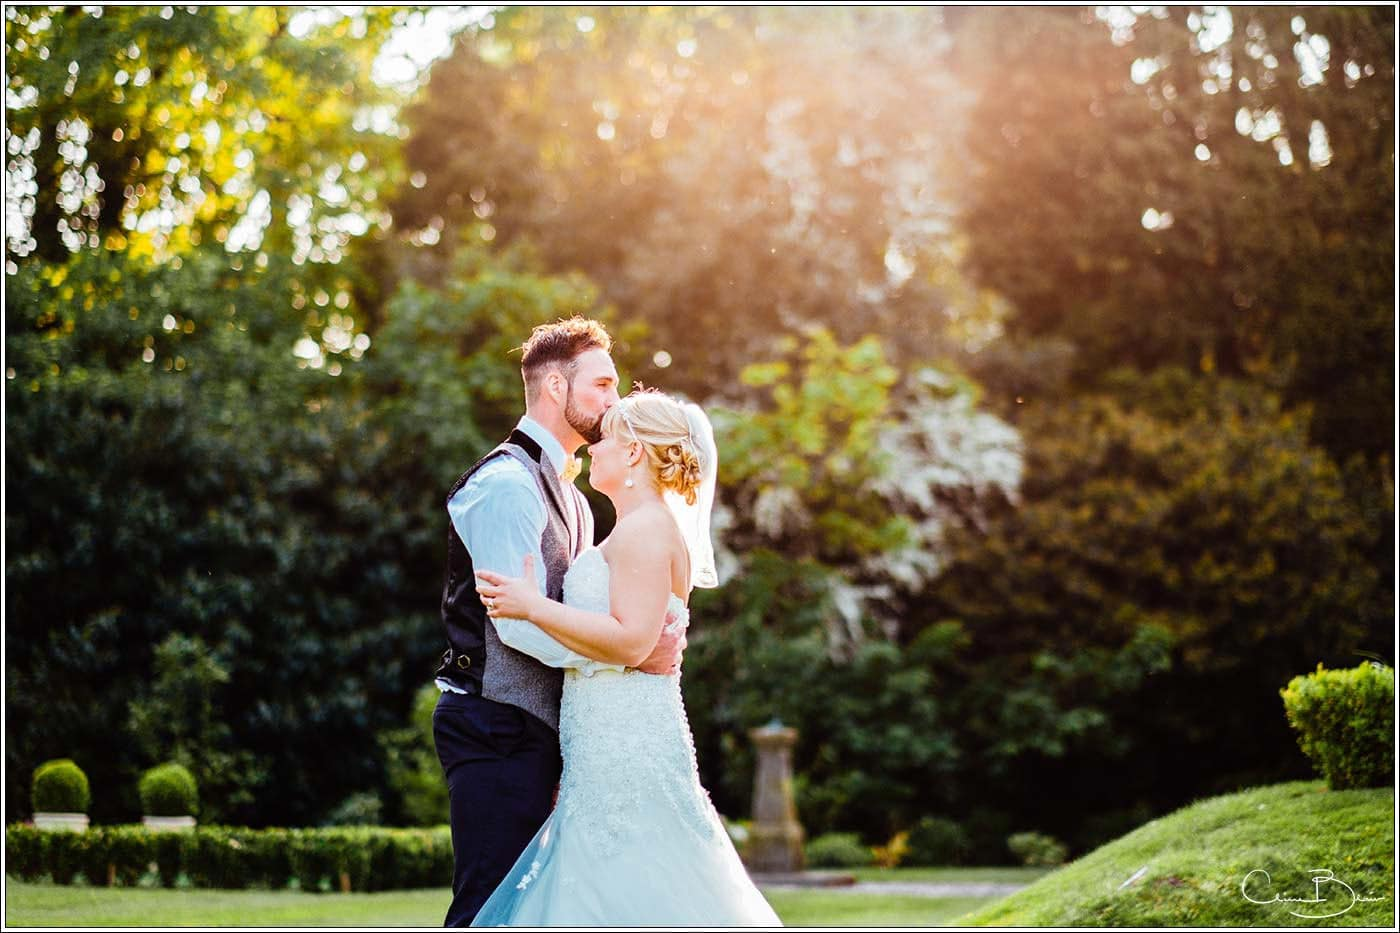 Groom and Bride enjoying the sun at Pendrell Hall as photographed by a recommended Pendrell Hall photographer